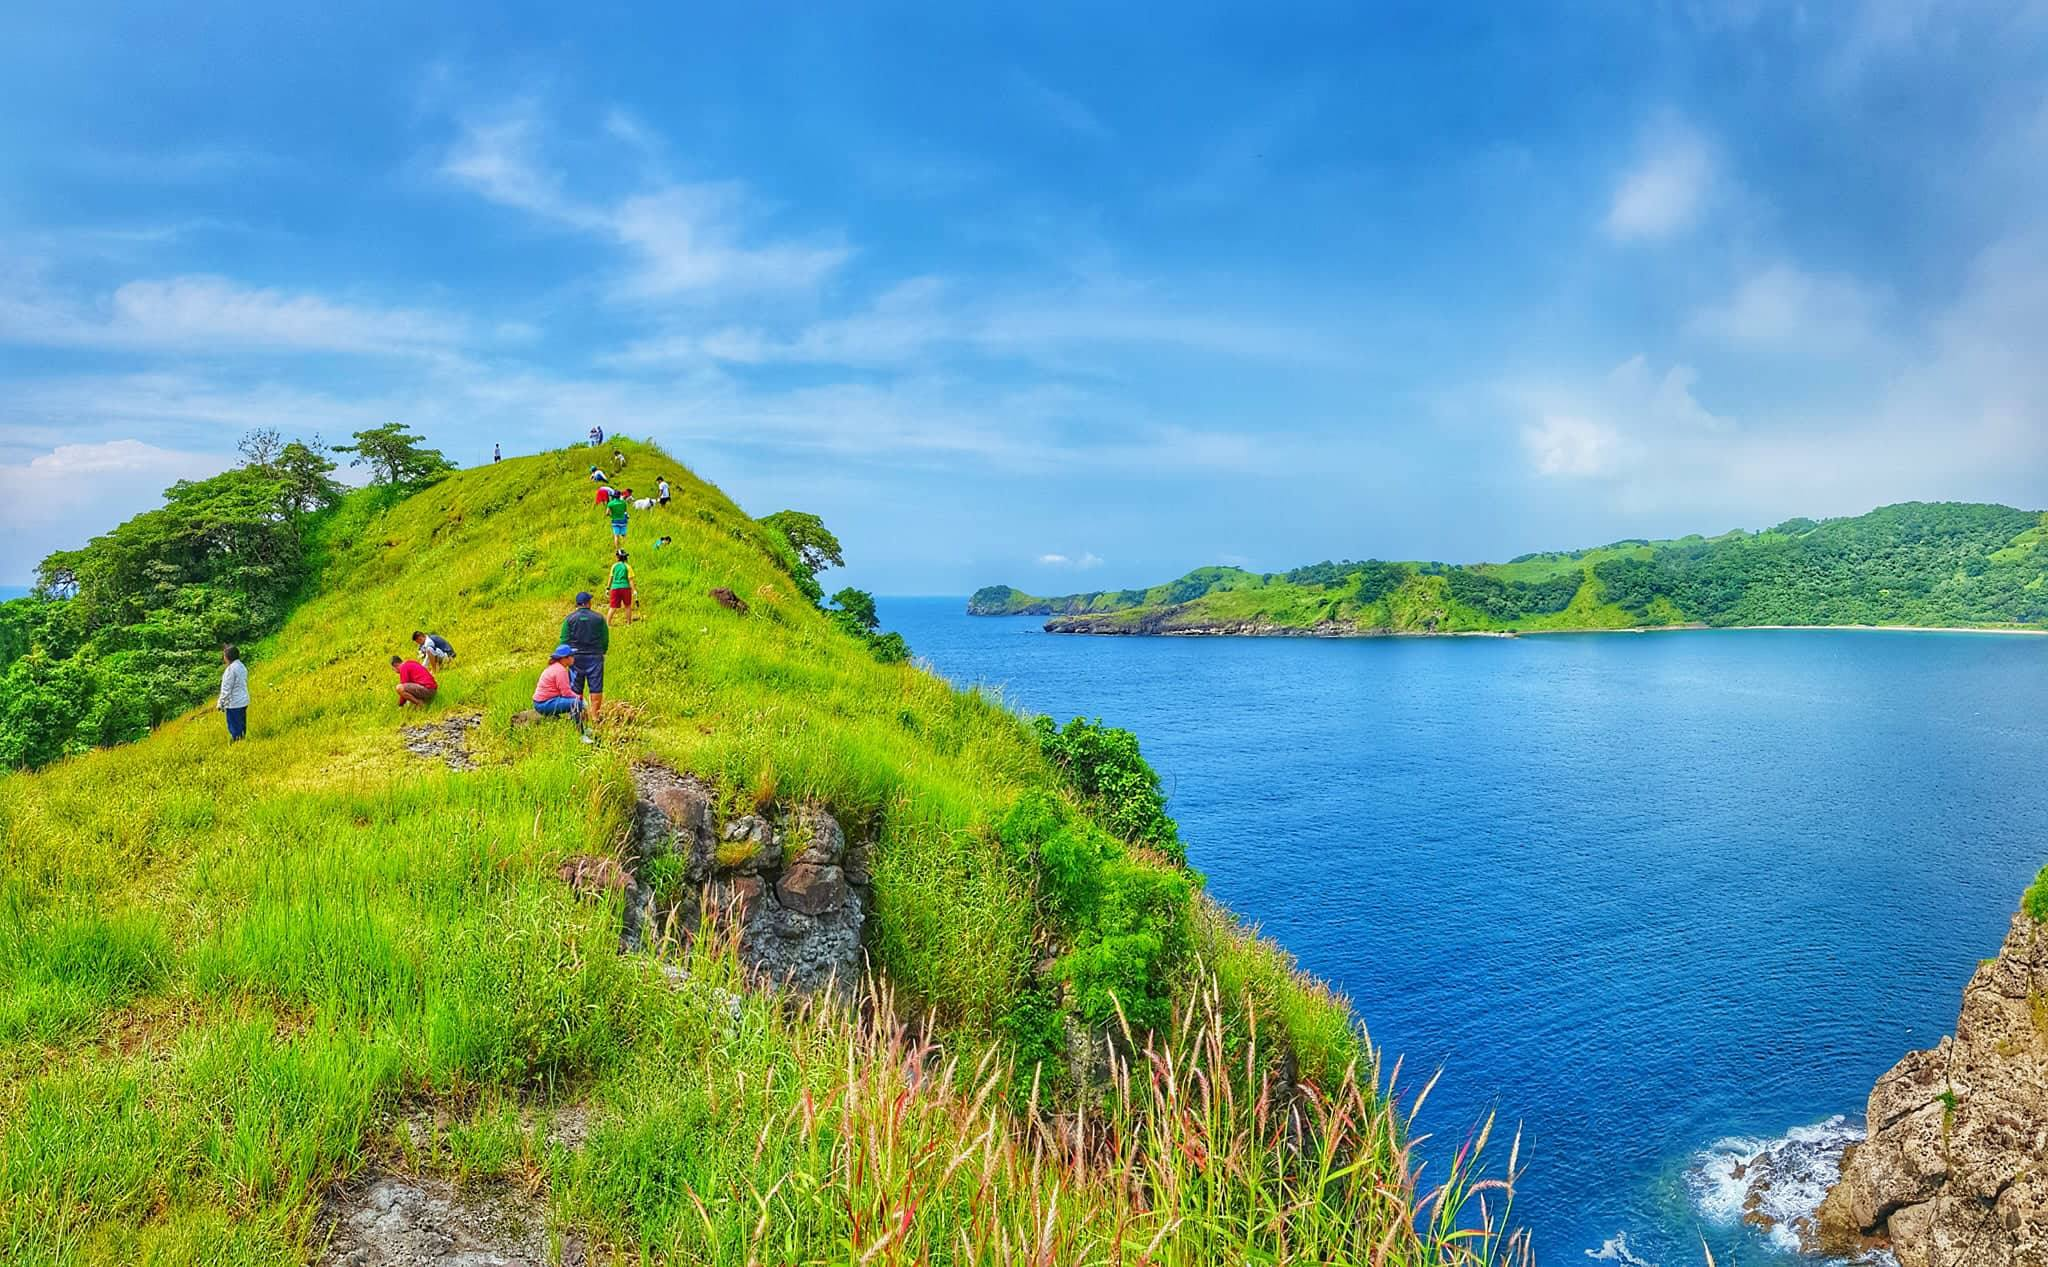 2018 Travel Hotspots Beautiful And Underrated 8 Ph Destinations To Visit In 2018